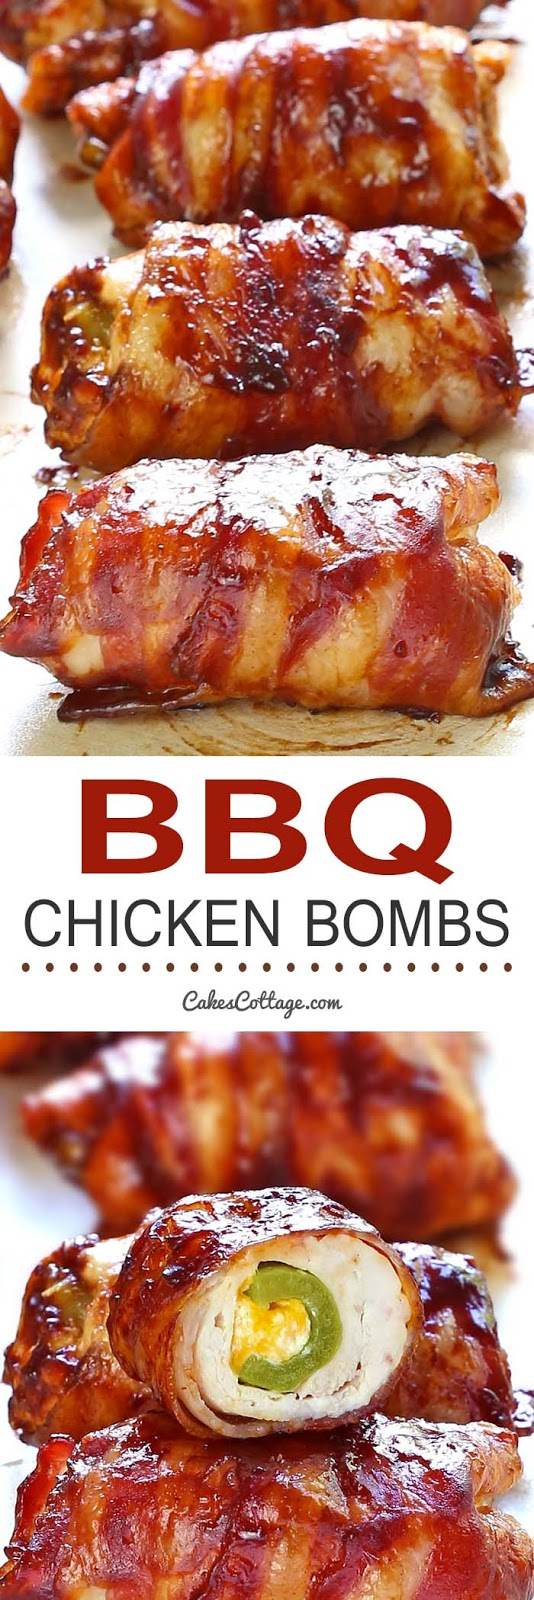 Bacon BBQ Chicken Bombs